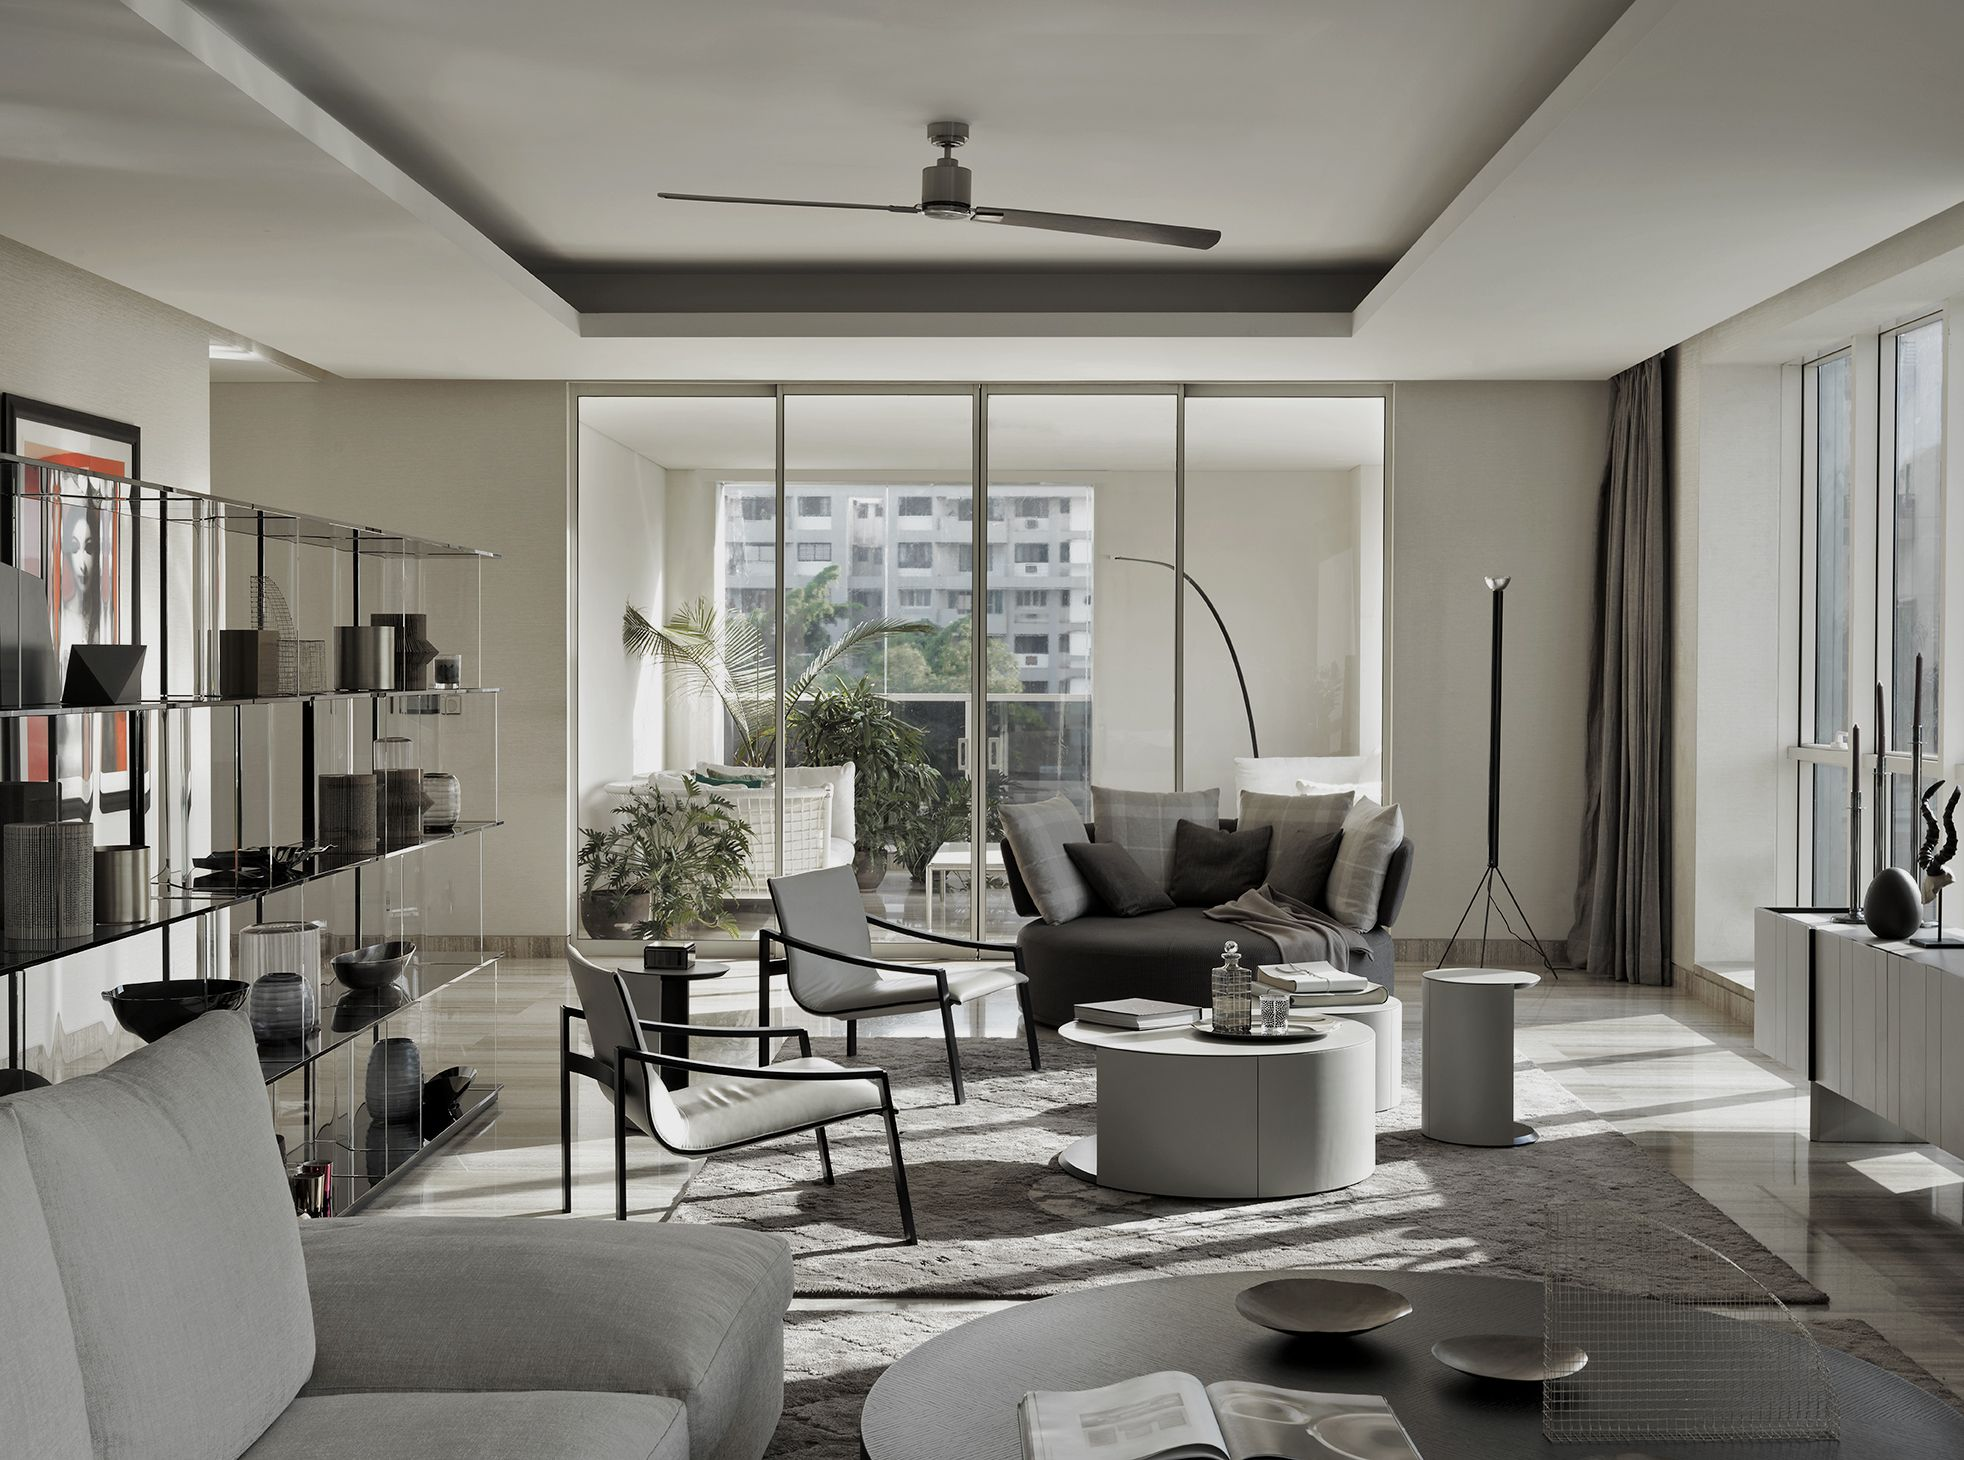 Penthouse At Trump Towers Pune With Images Interior Design